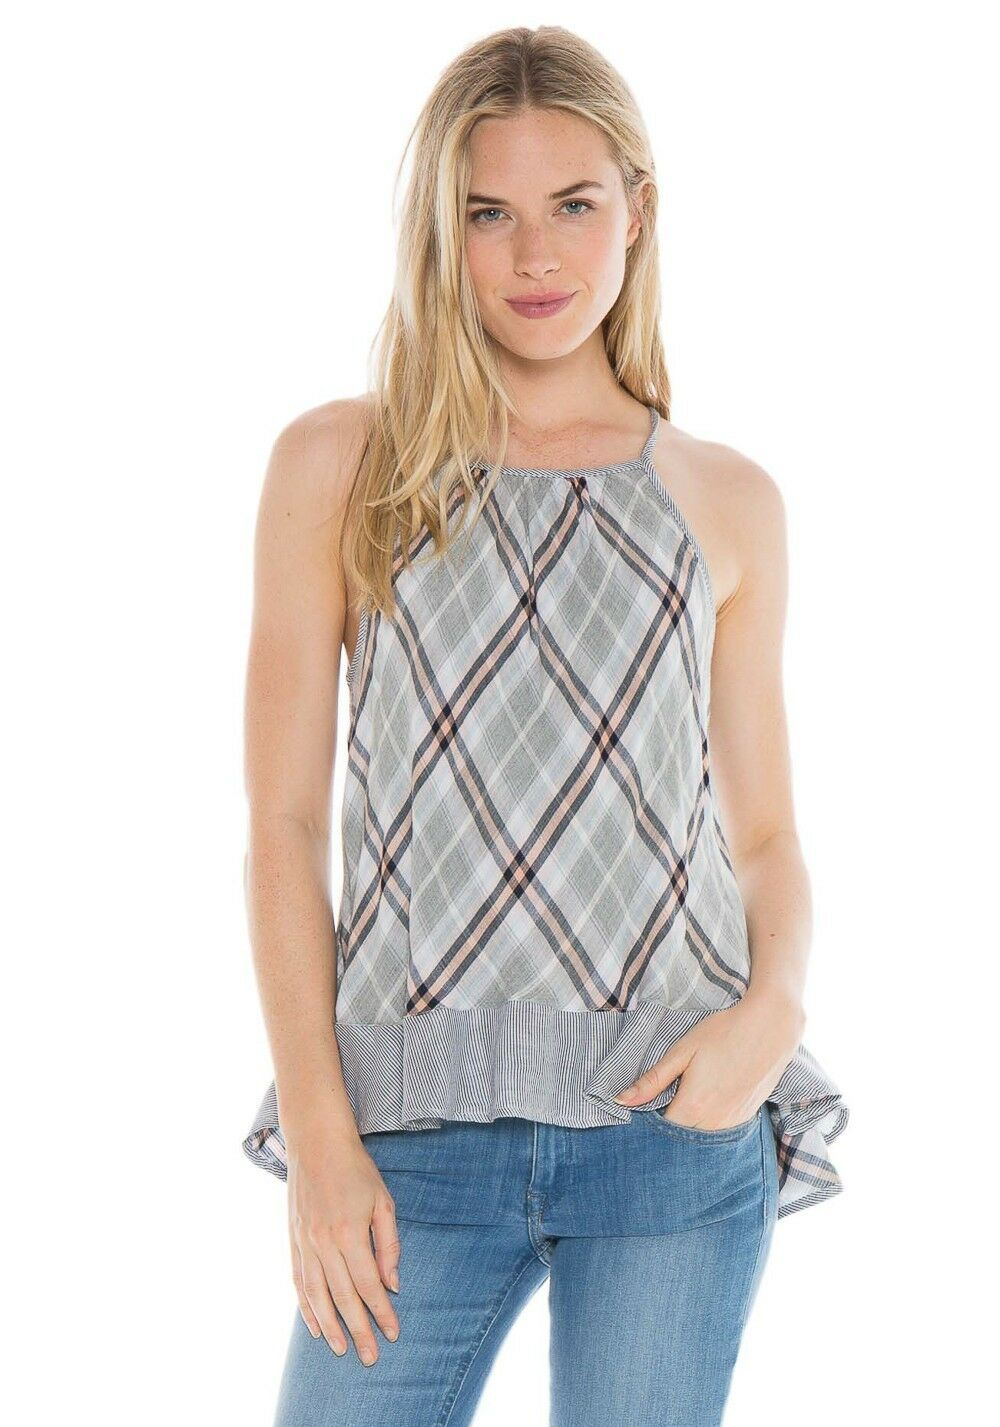 NEW CLOTH & STONE SzS BIAS PLAID HALTER CAMI IN PALM CANYON